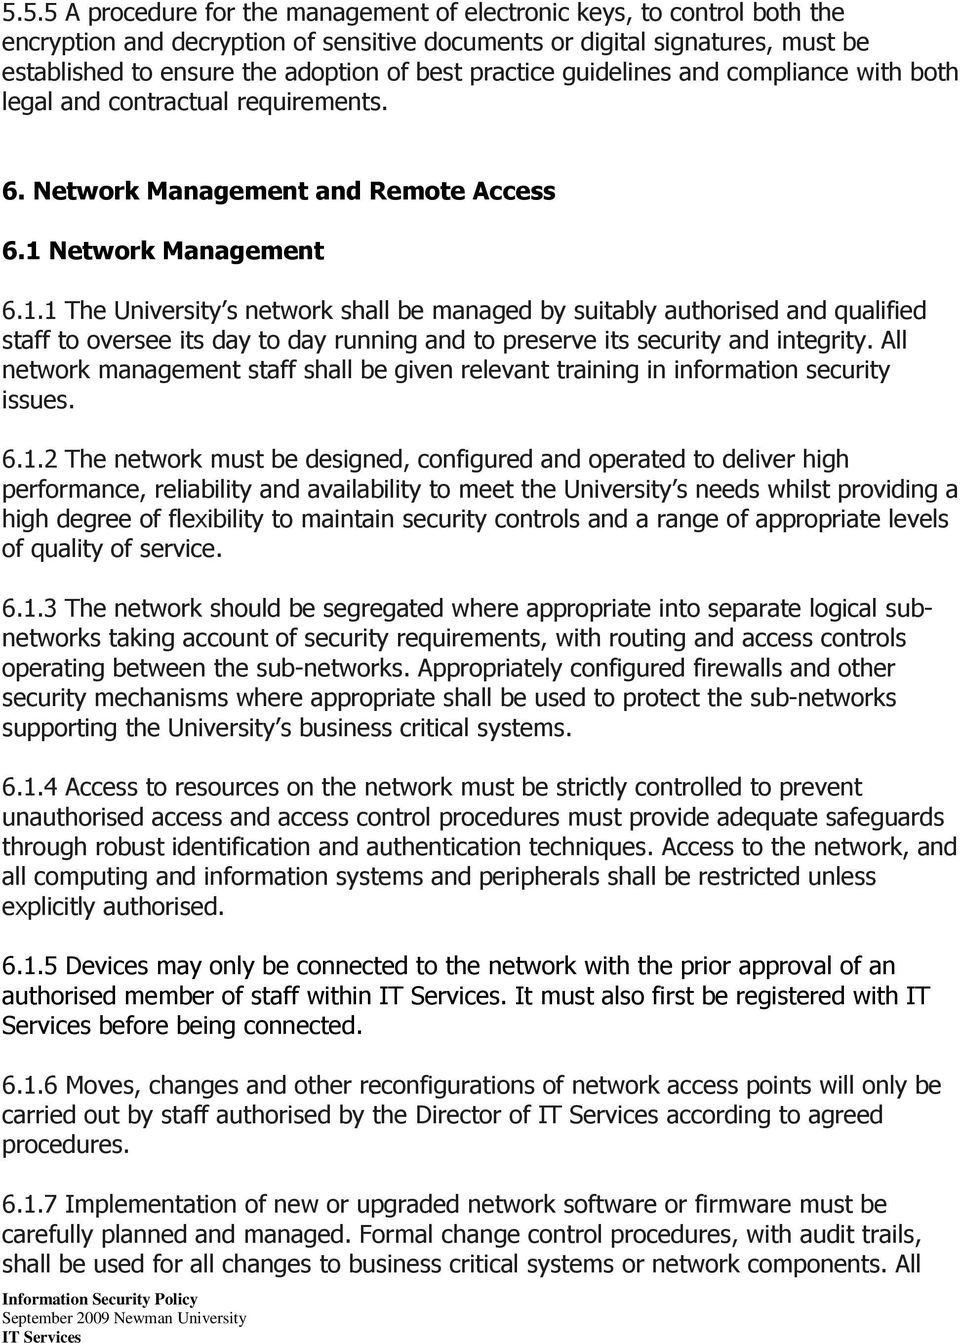 Network Management 6.1.1 The University s network shall be managed by suitably authorised and qualified staff to oversee its day to day running and to preserve its security and integrity.